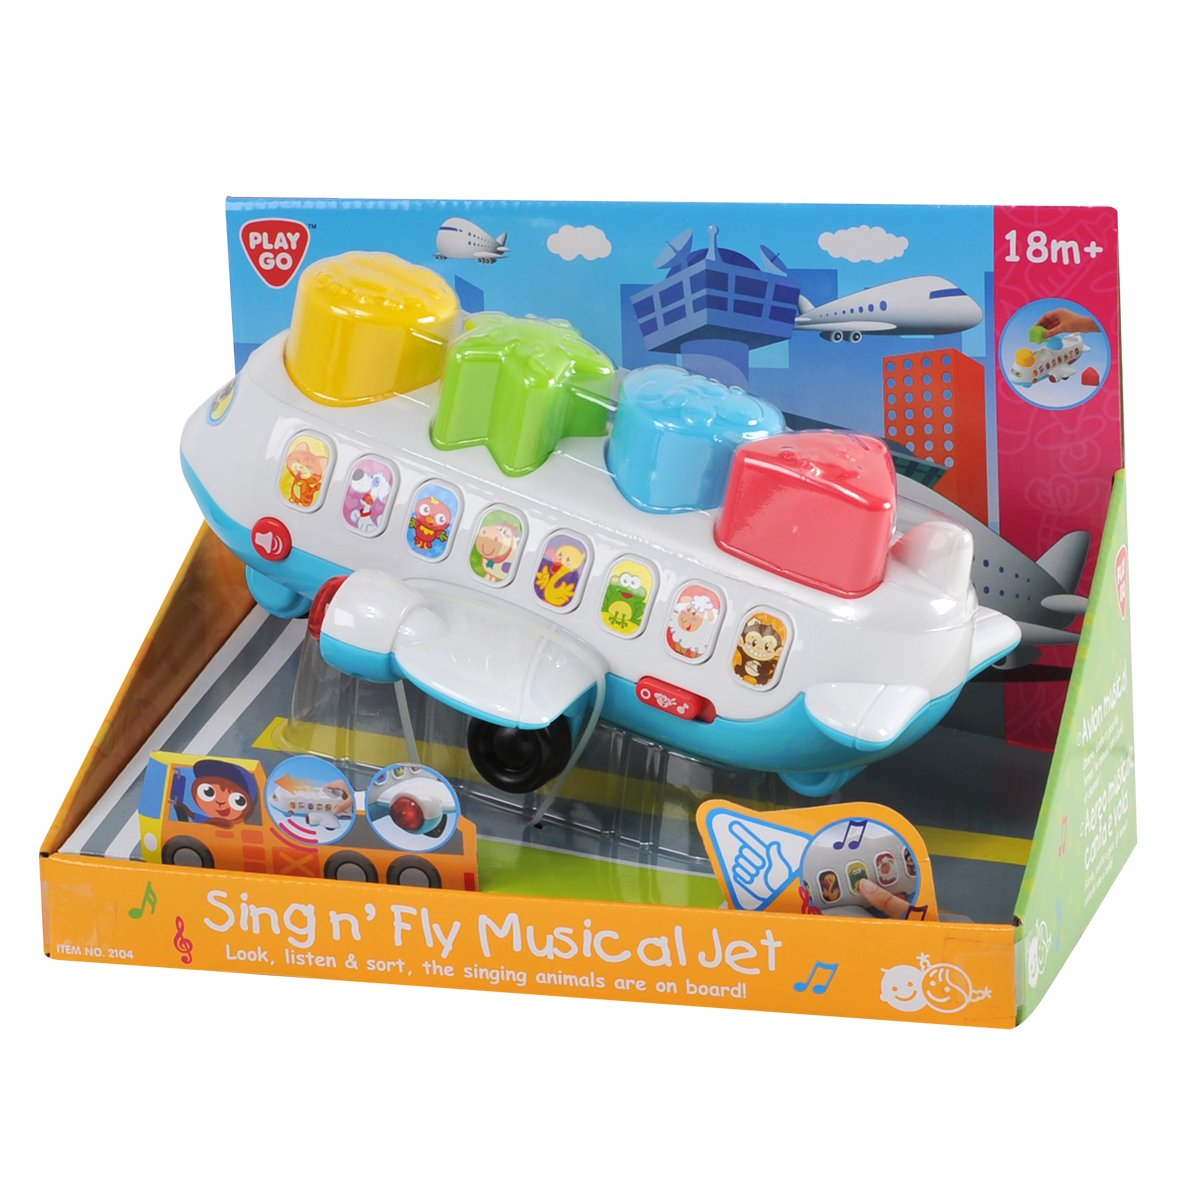 PlayGo Sing N Fly Musical Jet Midos Toys Distributor 2104